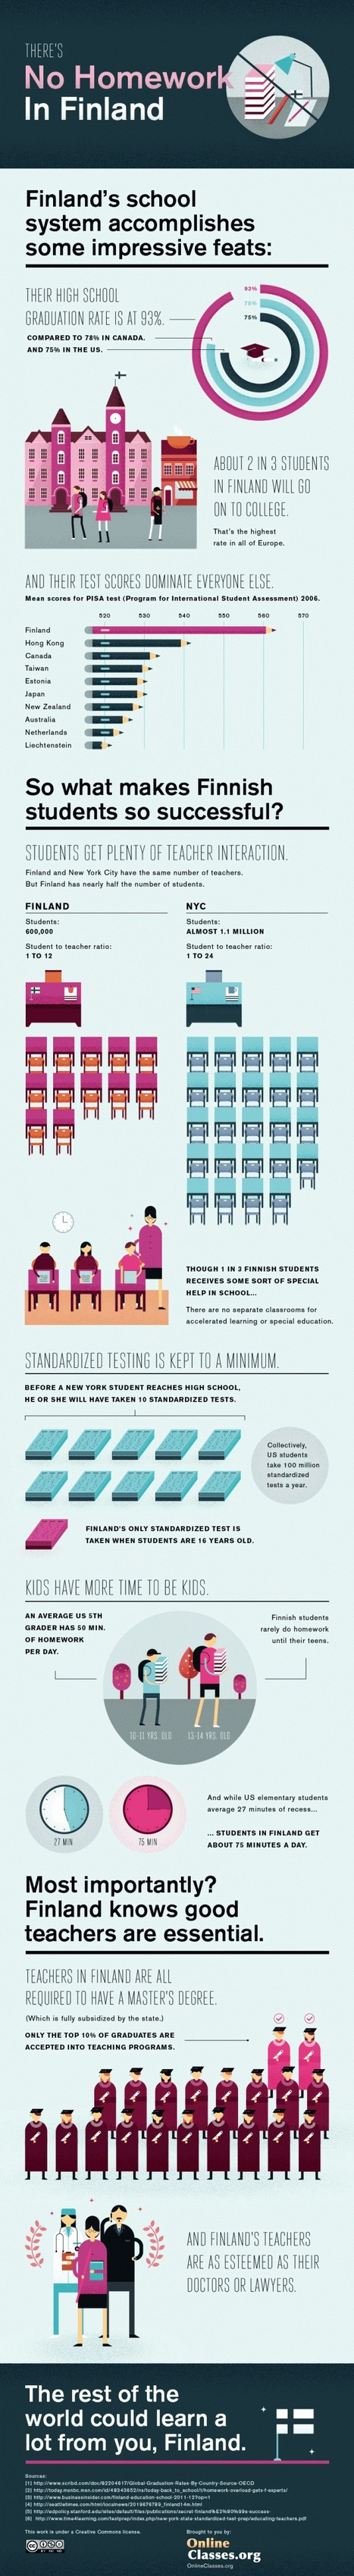 Why Finland's Educational System is so Effective Infographic | Teaching English Today | Scoop.it